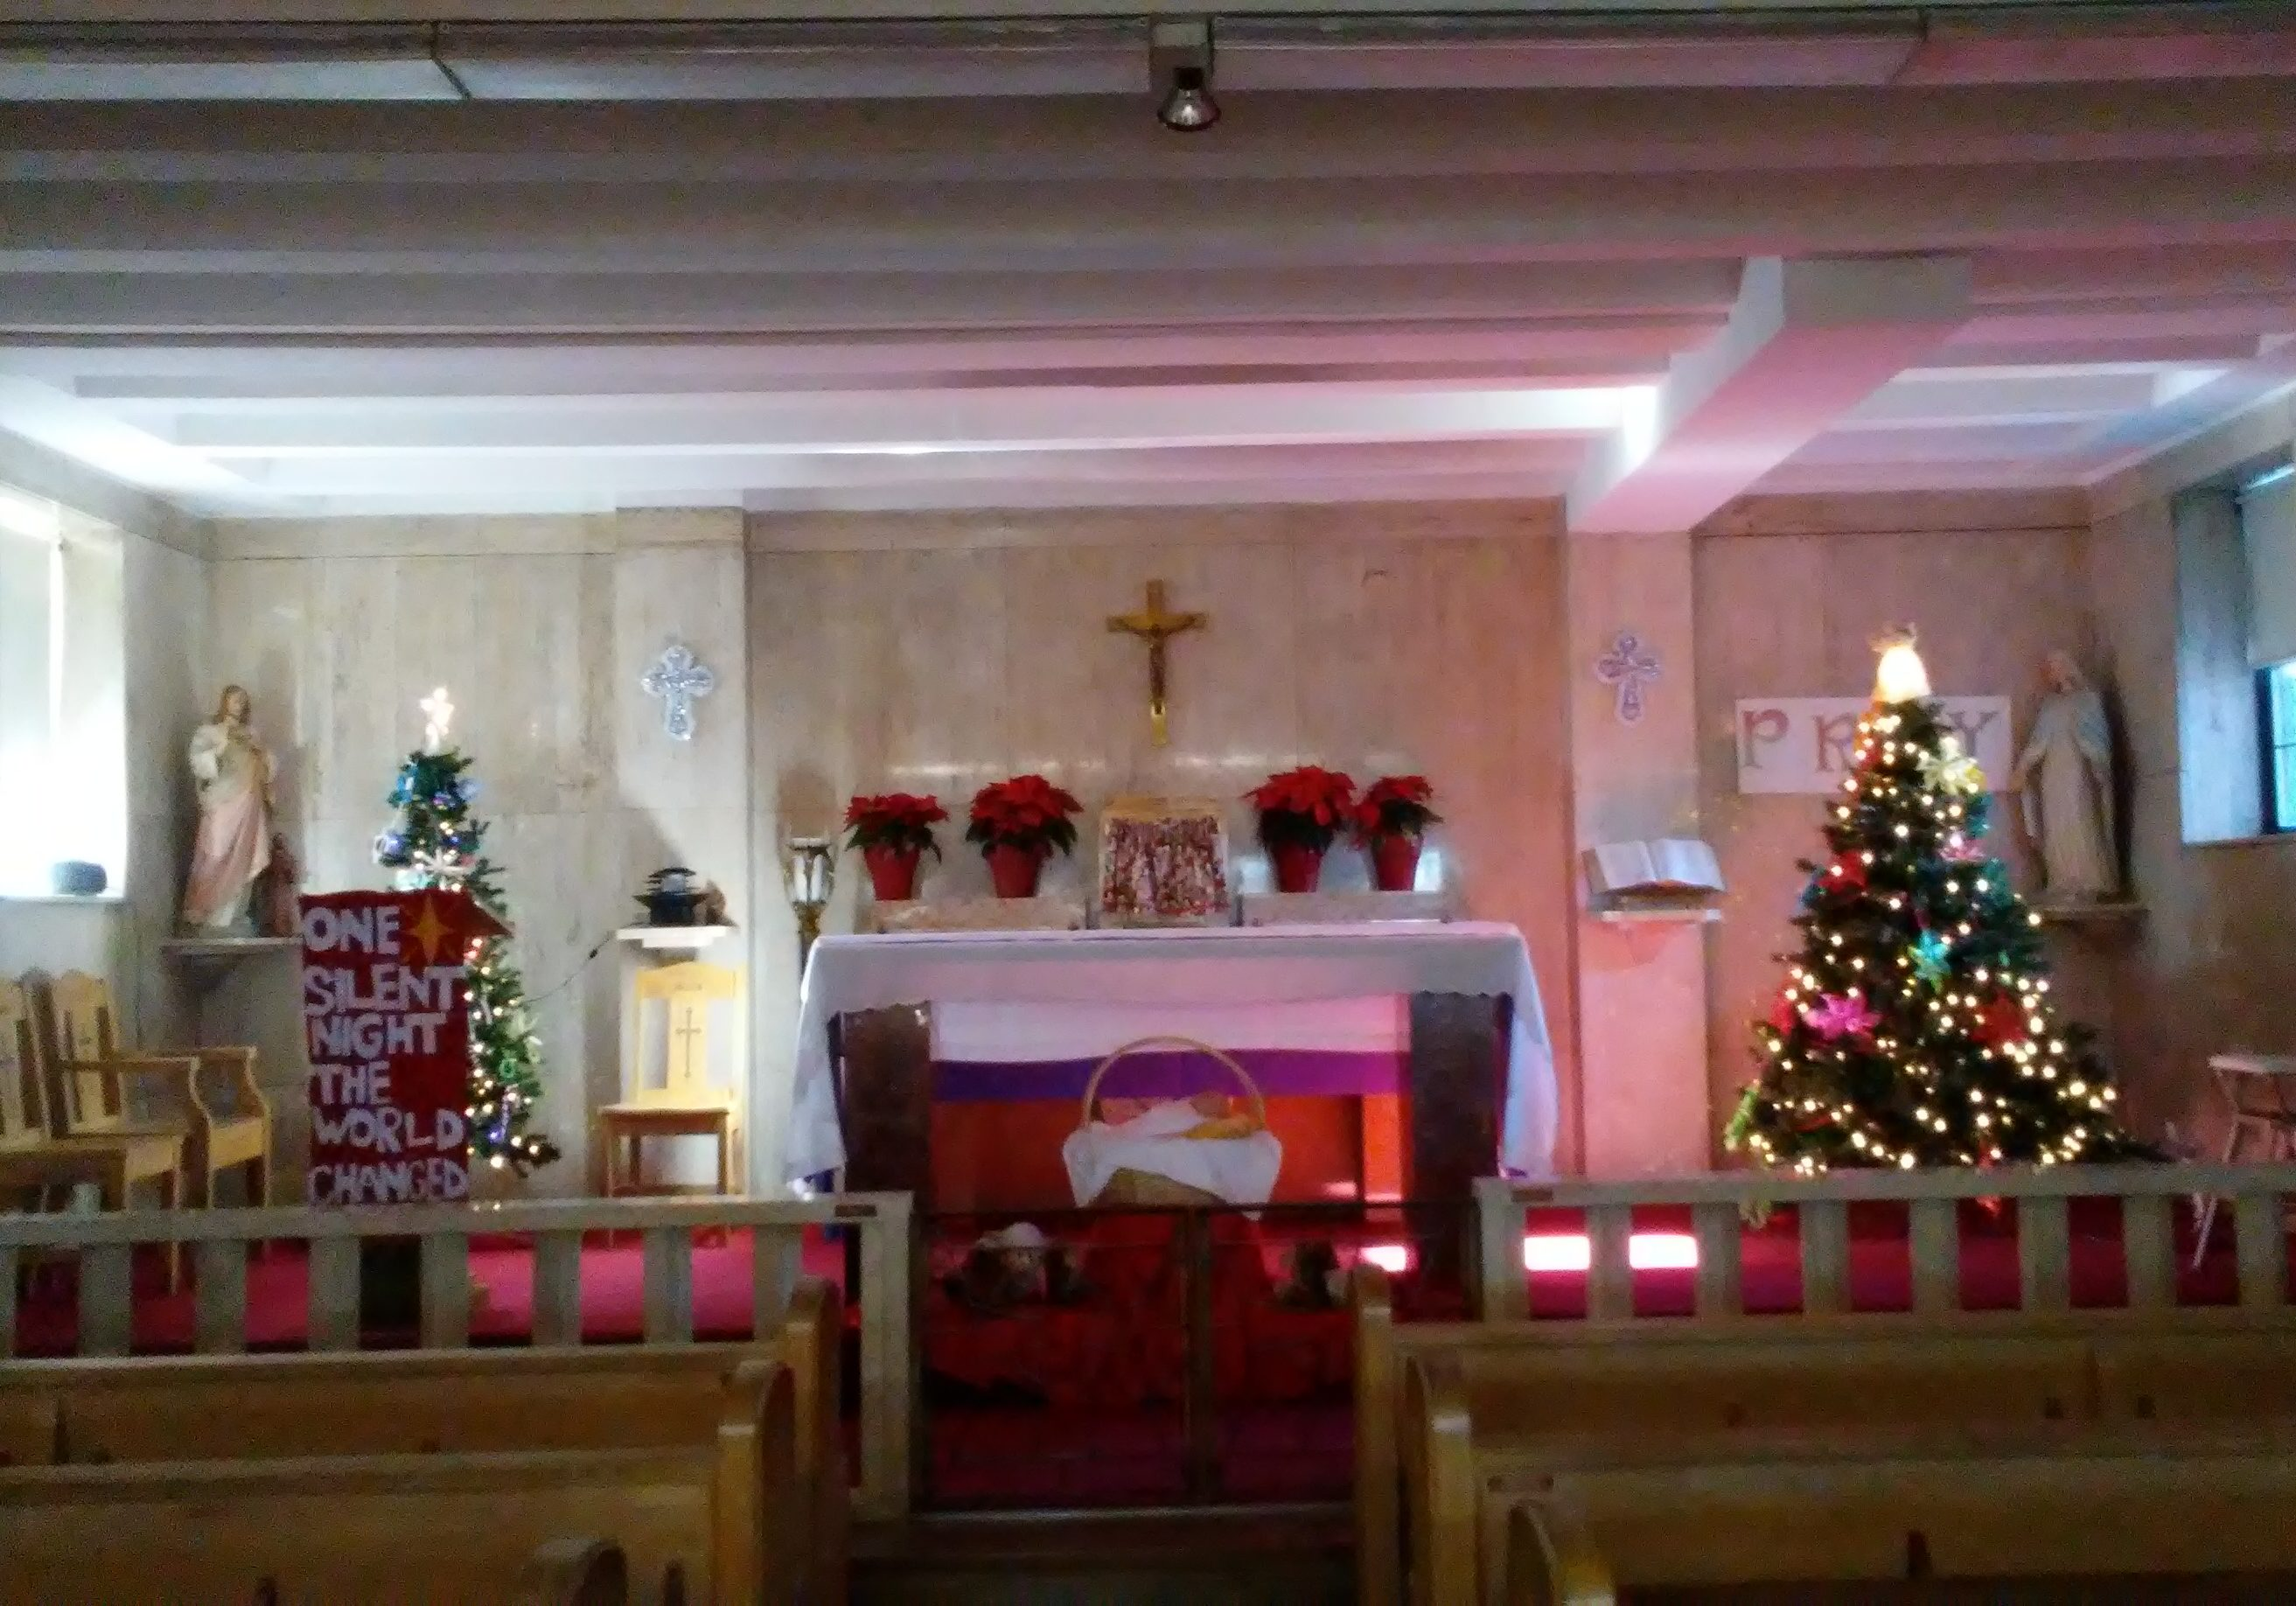 Italian Home Altar at Christmas